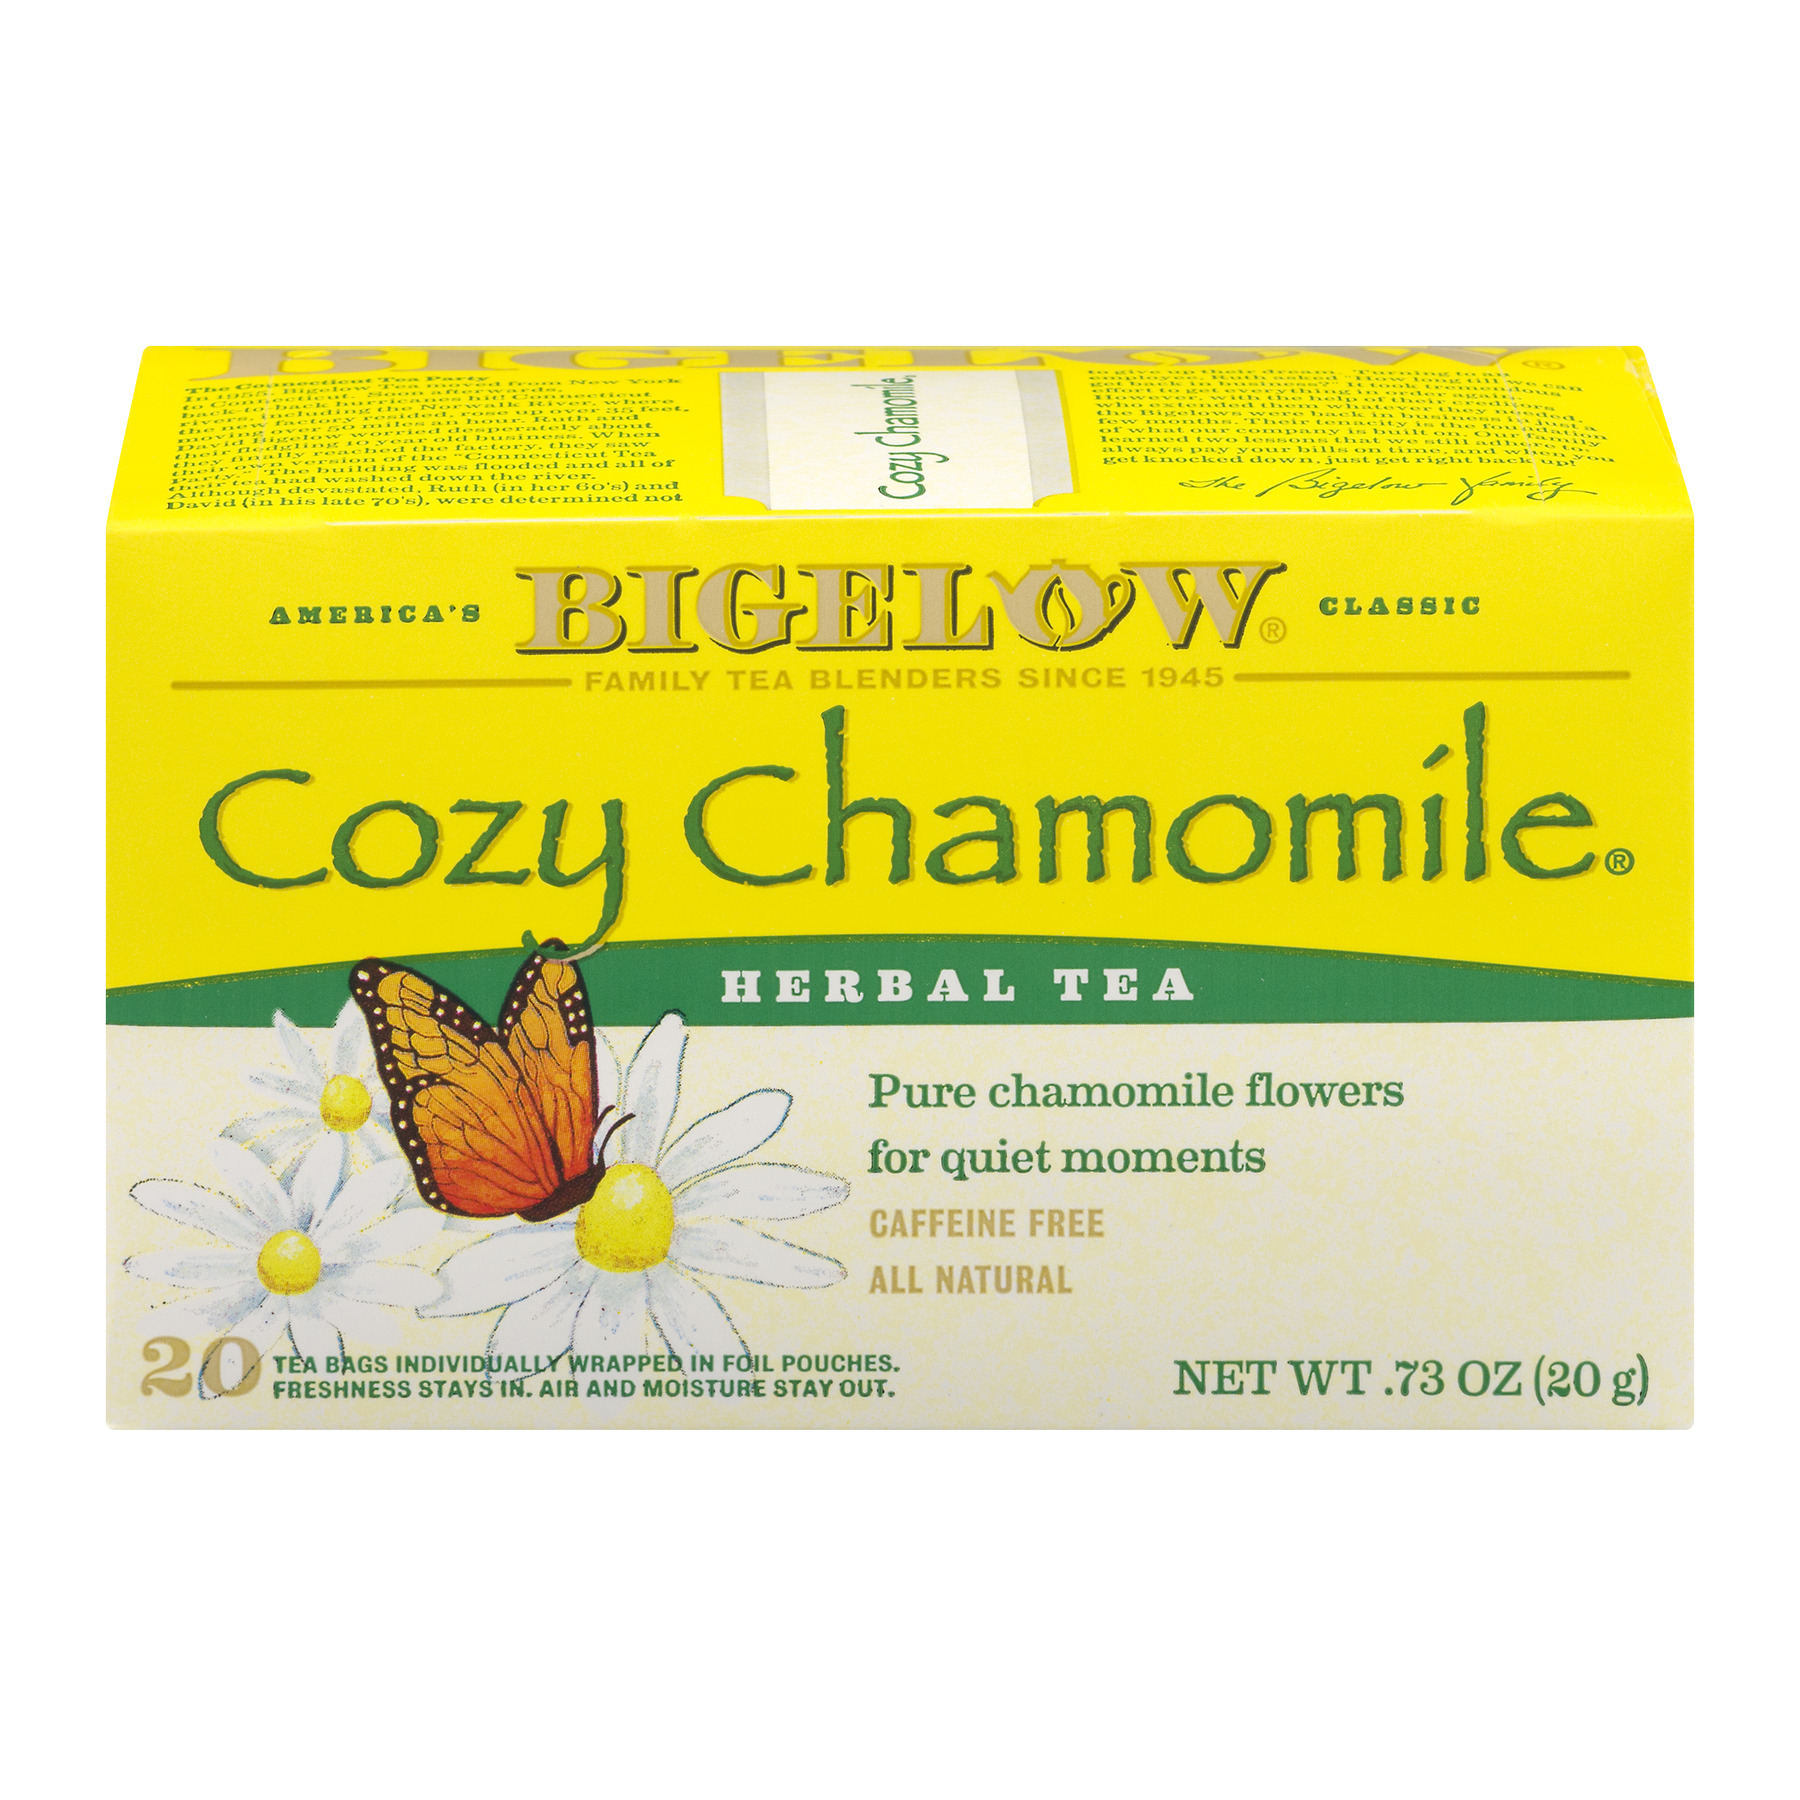 Bigelow Herbal Tea Bags Cozy Chamomile - 20 CT20.0 CT